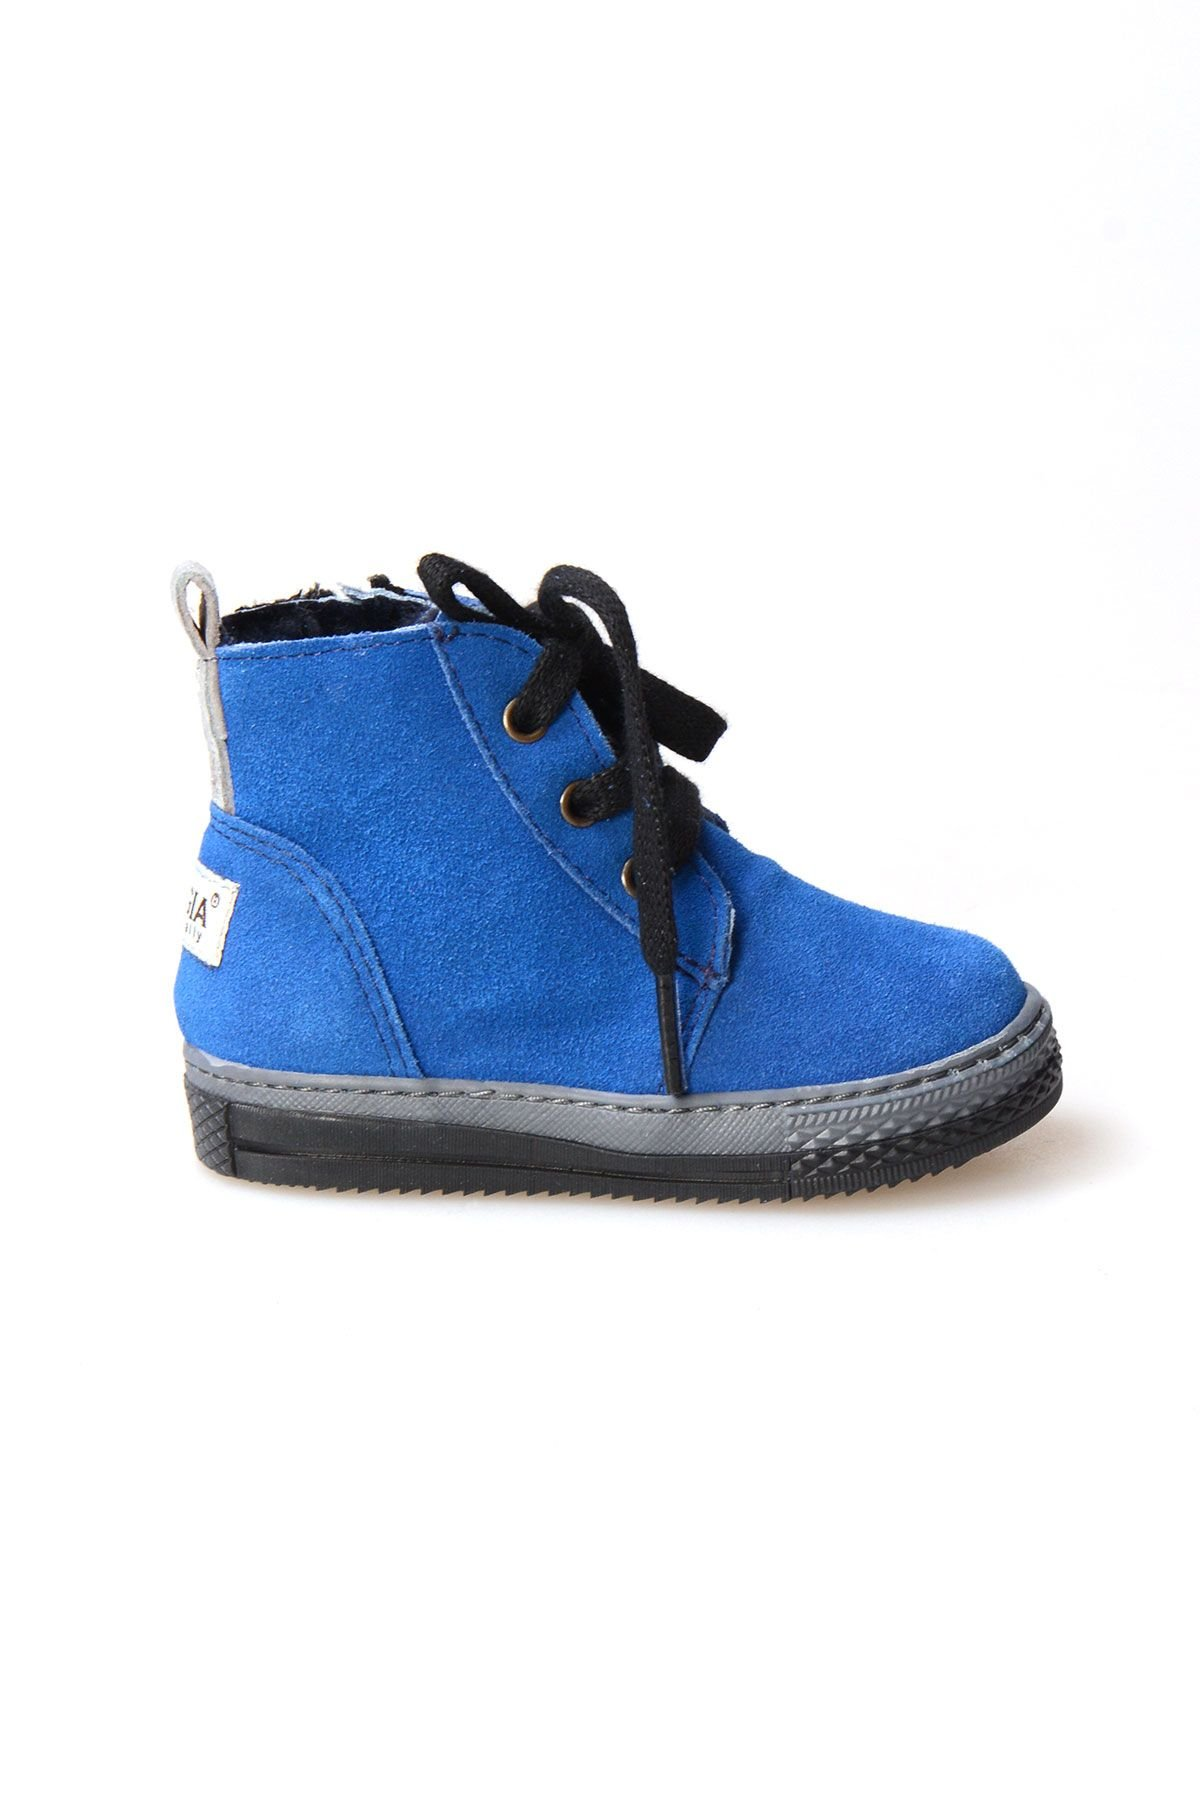 Pegia Genuine Suede & Shearling Baby's Boots 186001 Blue